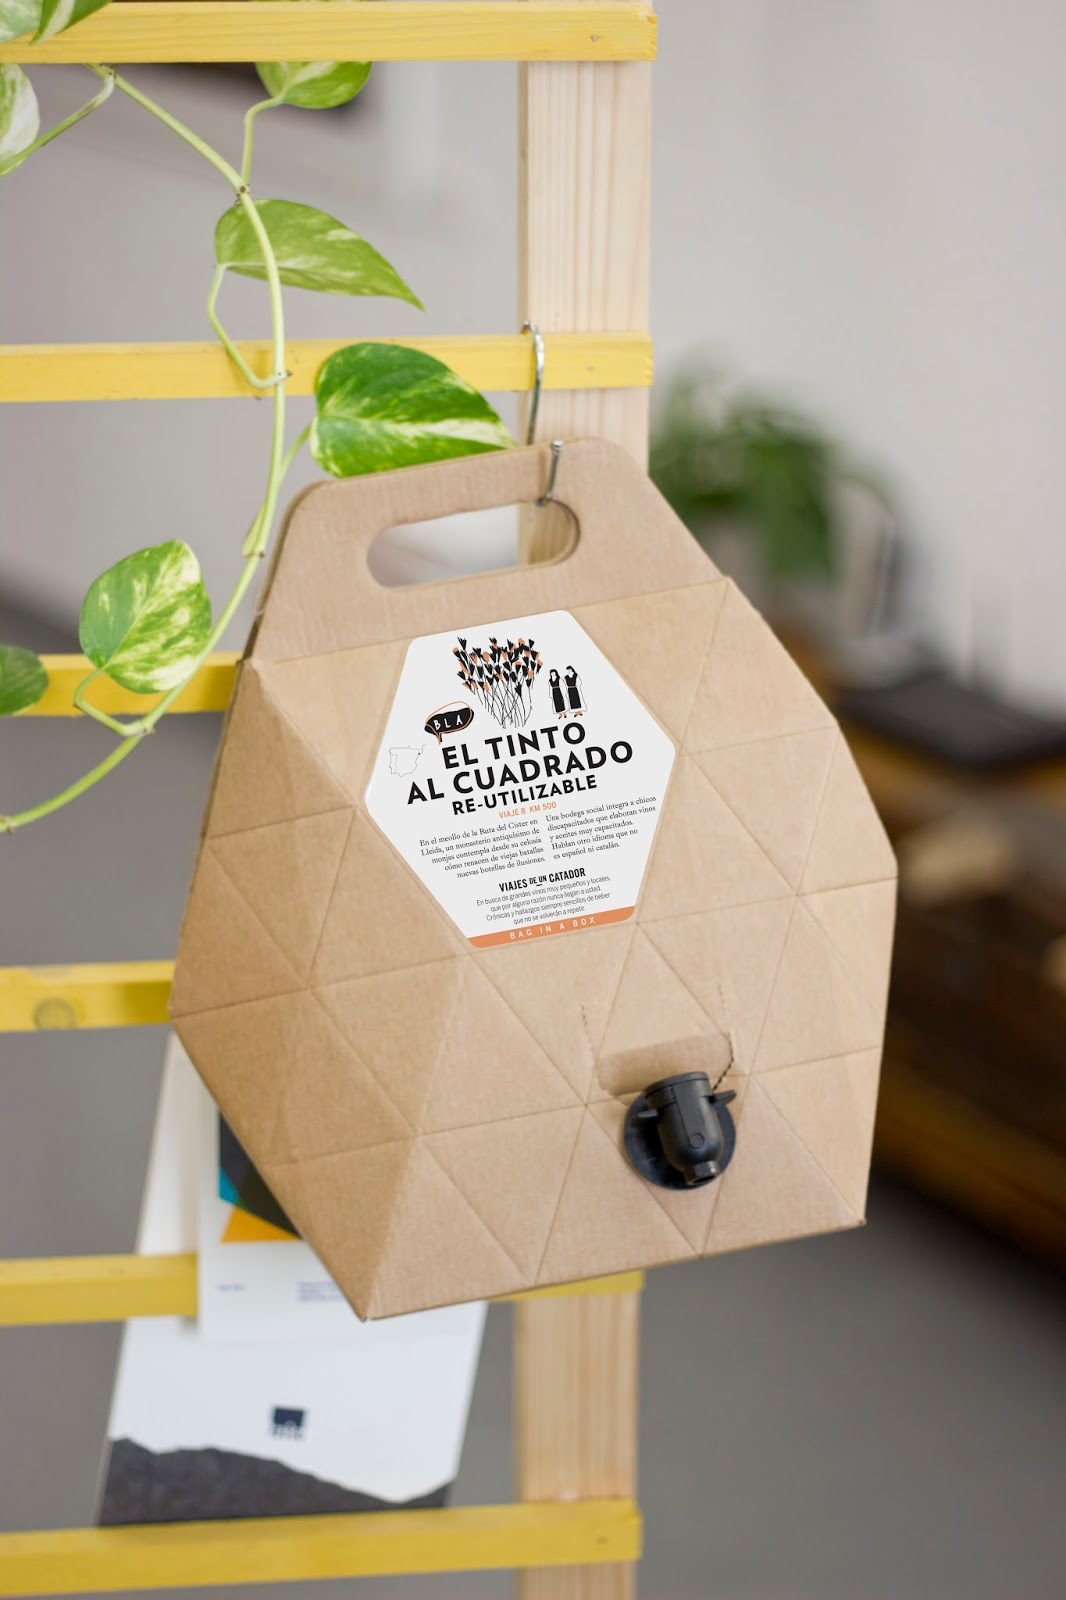 Example of cardboard packaging being used for sustainable efforts